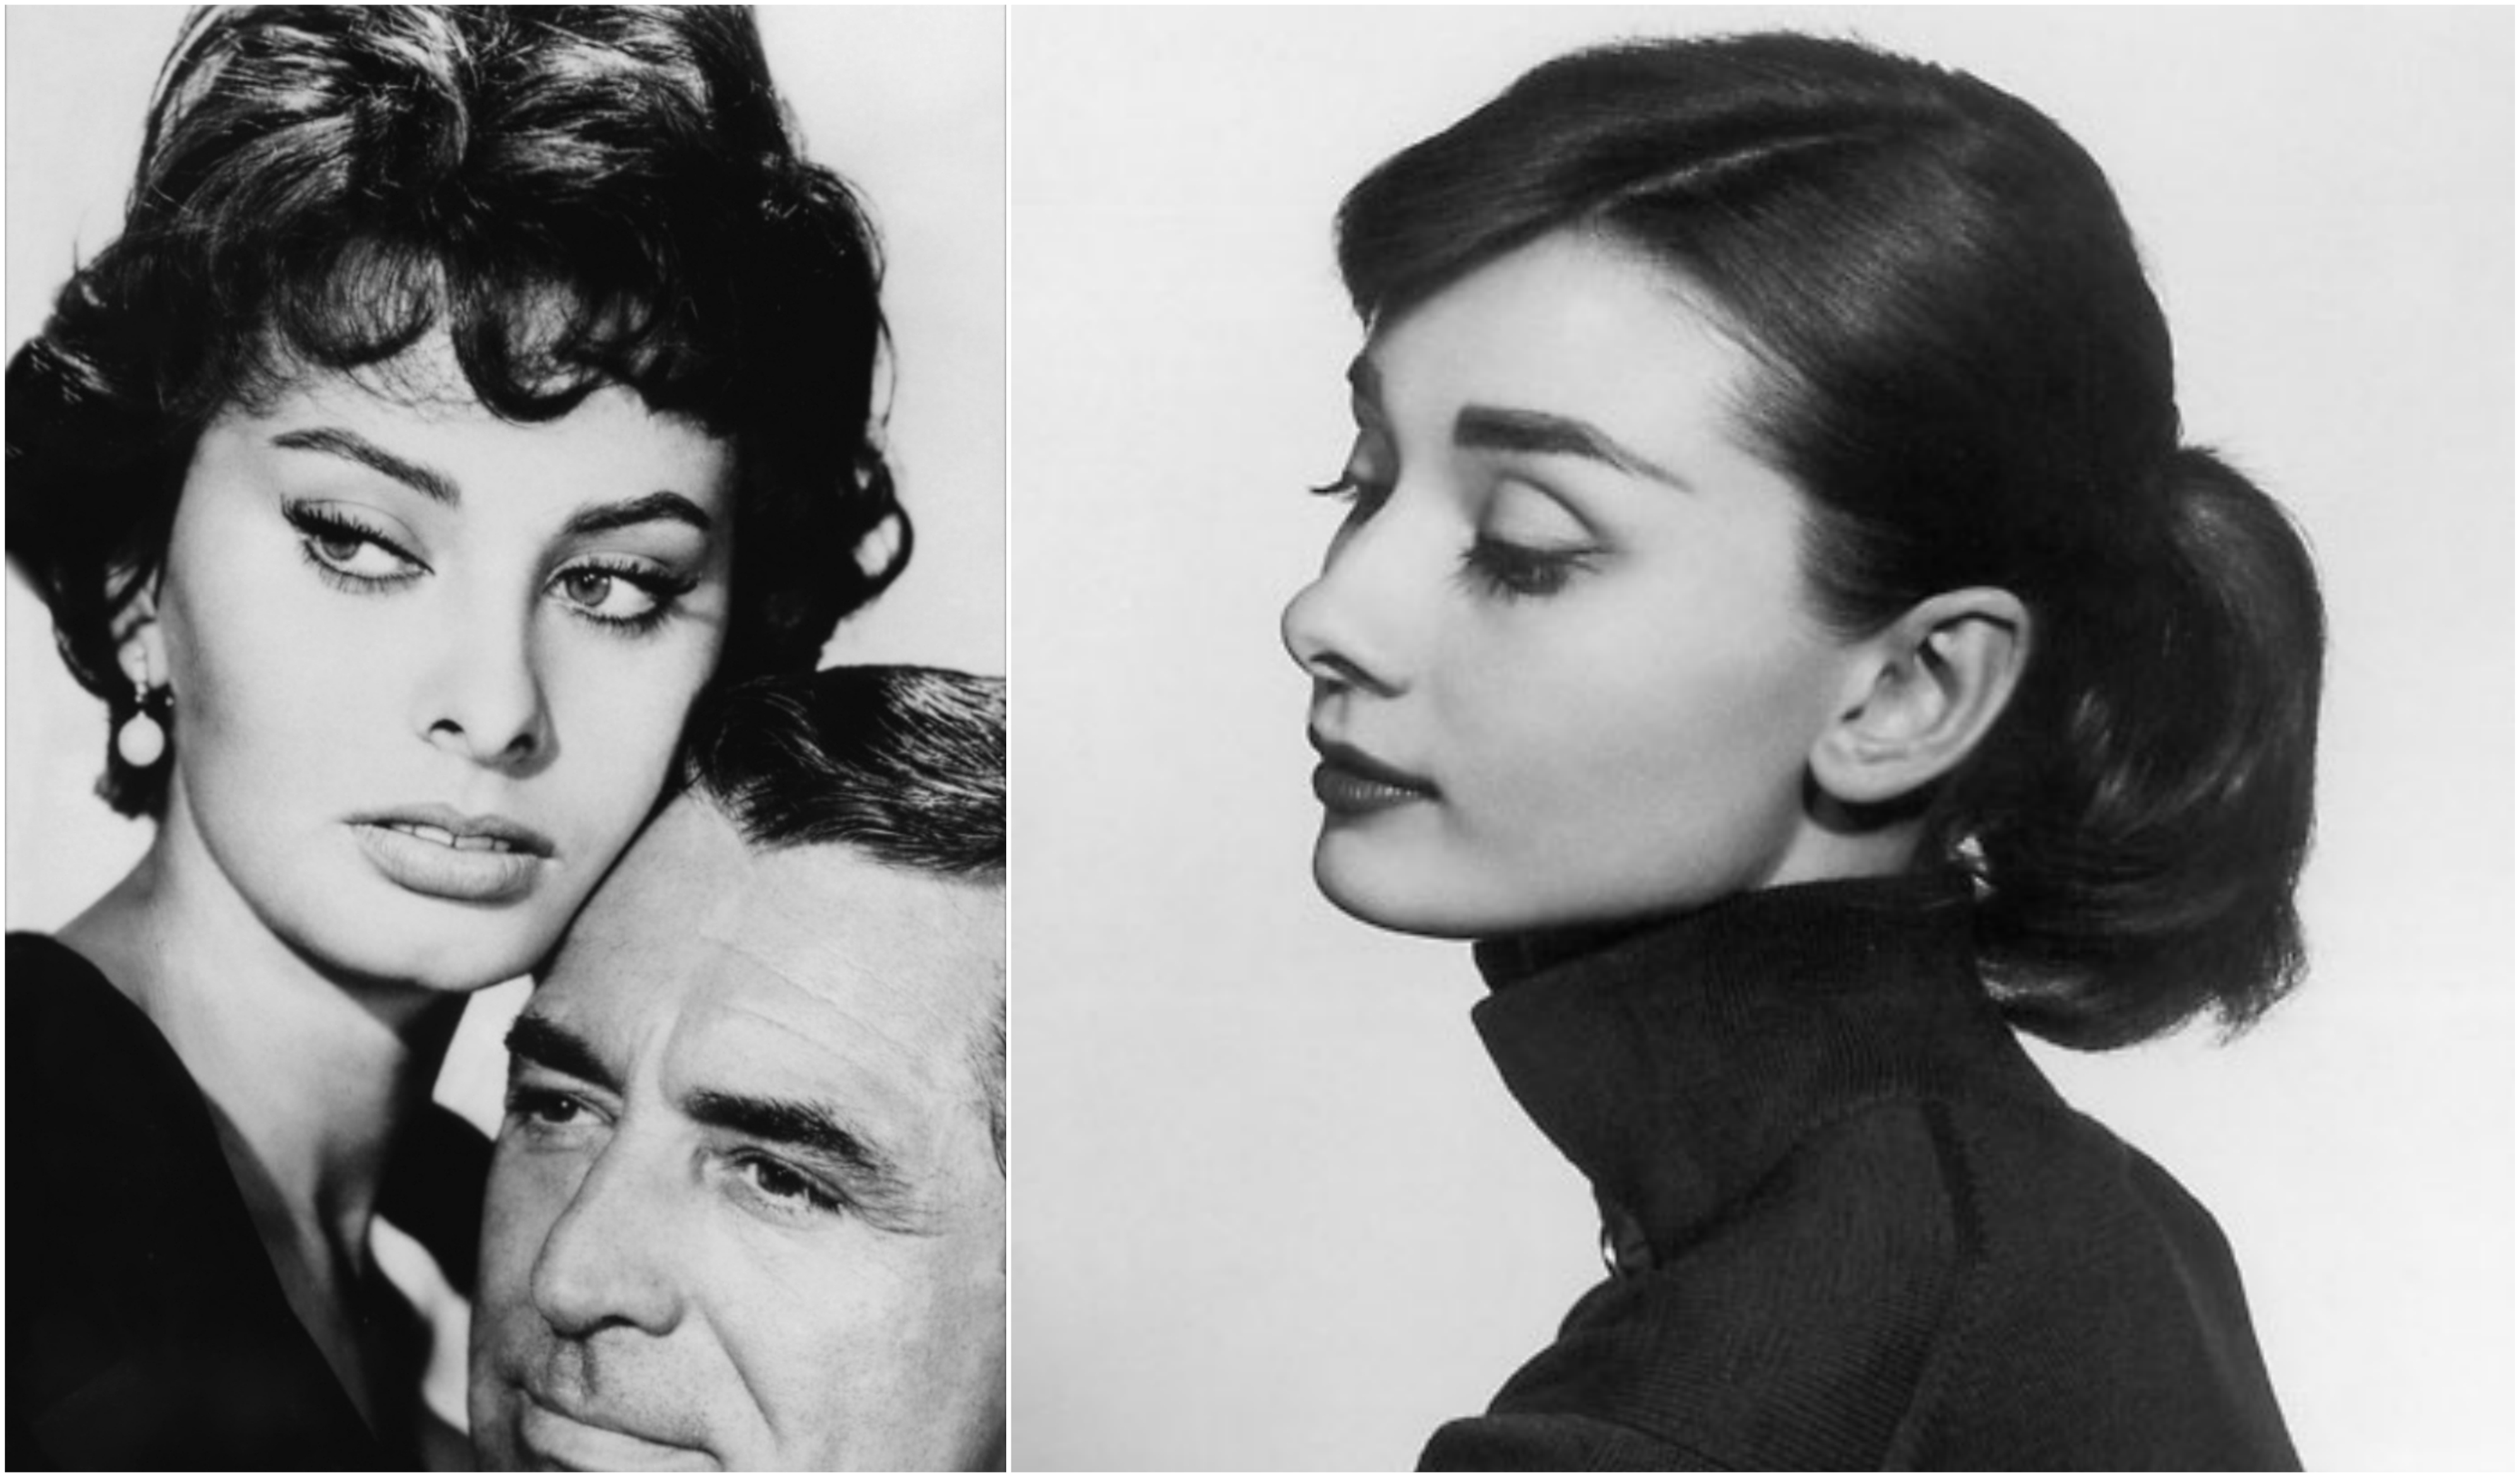 The History of Makeup – The 1950s